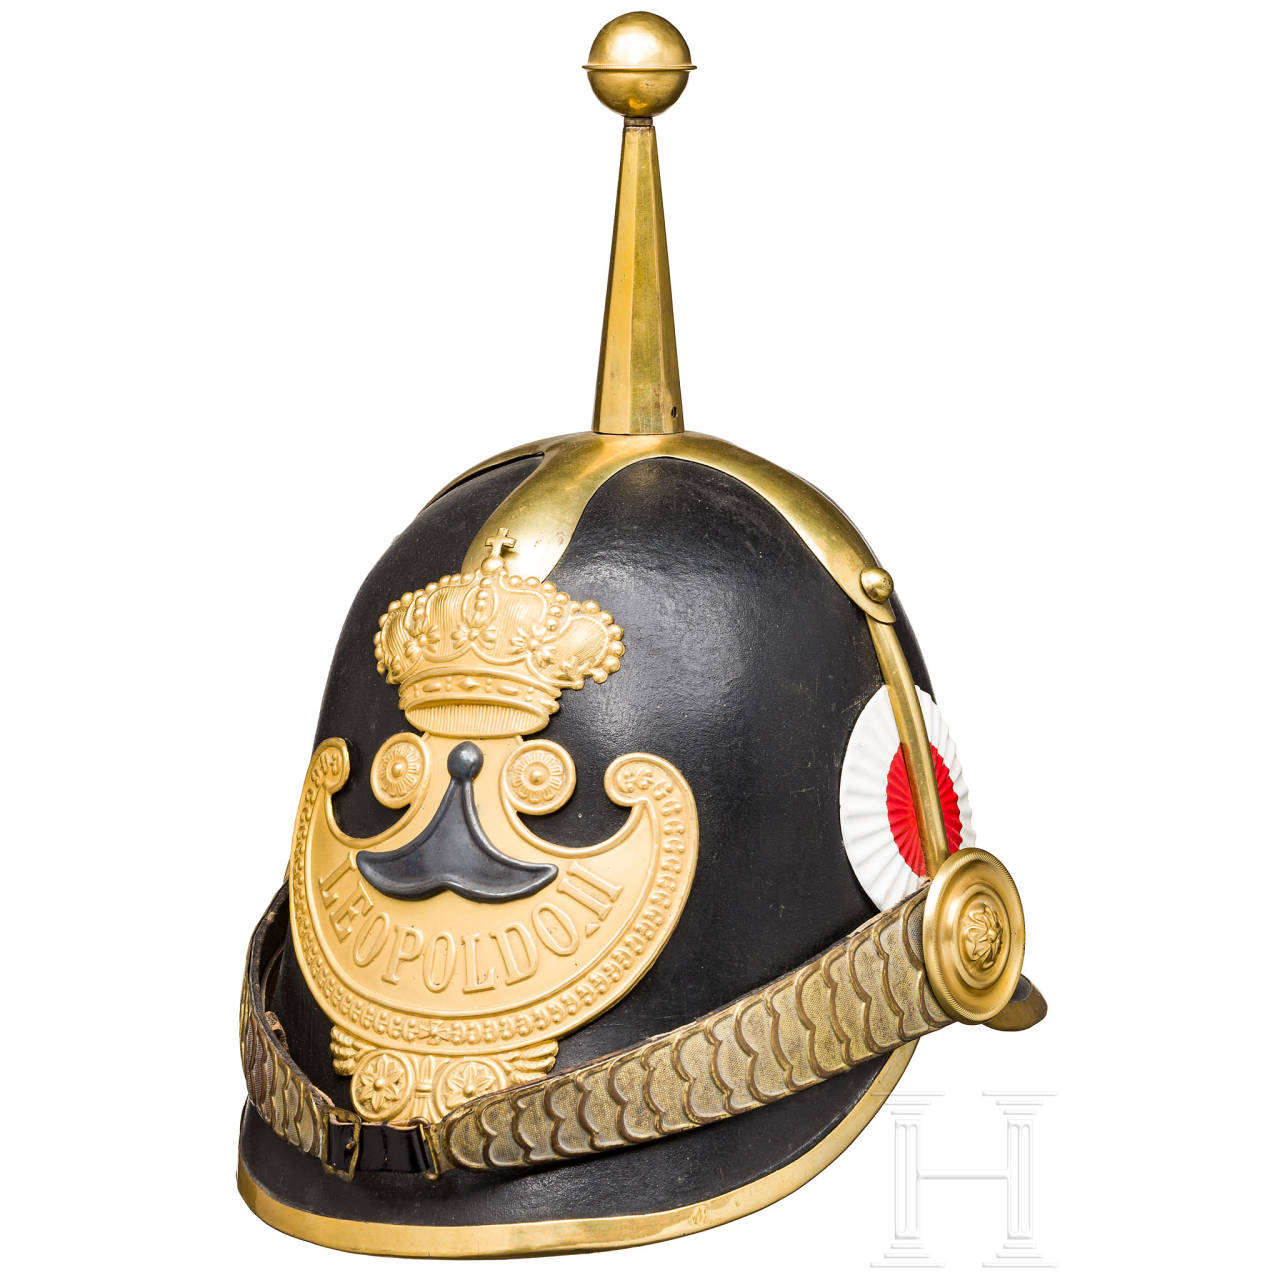 """Helmet of the """"Guardia Civica"""" from the reign of Leopold II, Grand Duke of Tuscany (1824-1859)"""